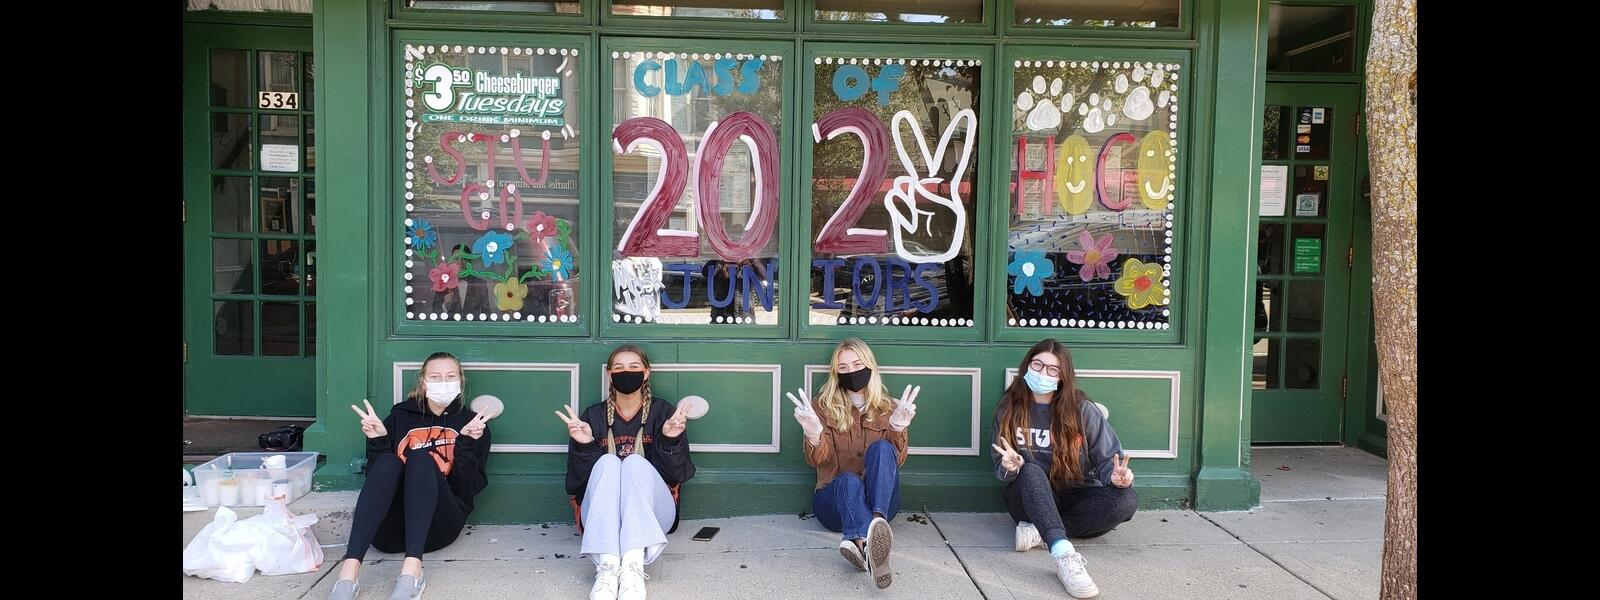 4 students sitting in front of store window they painted for homecoming